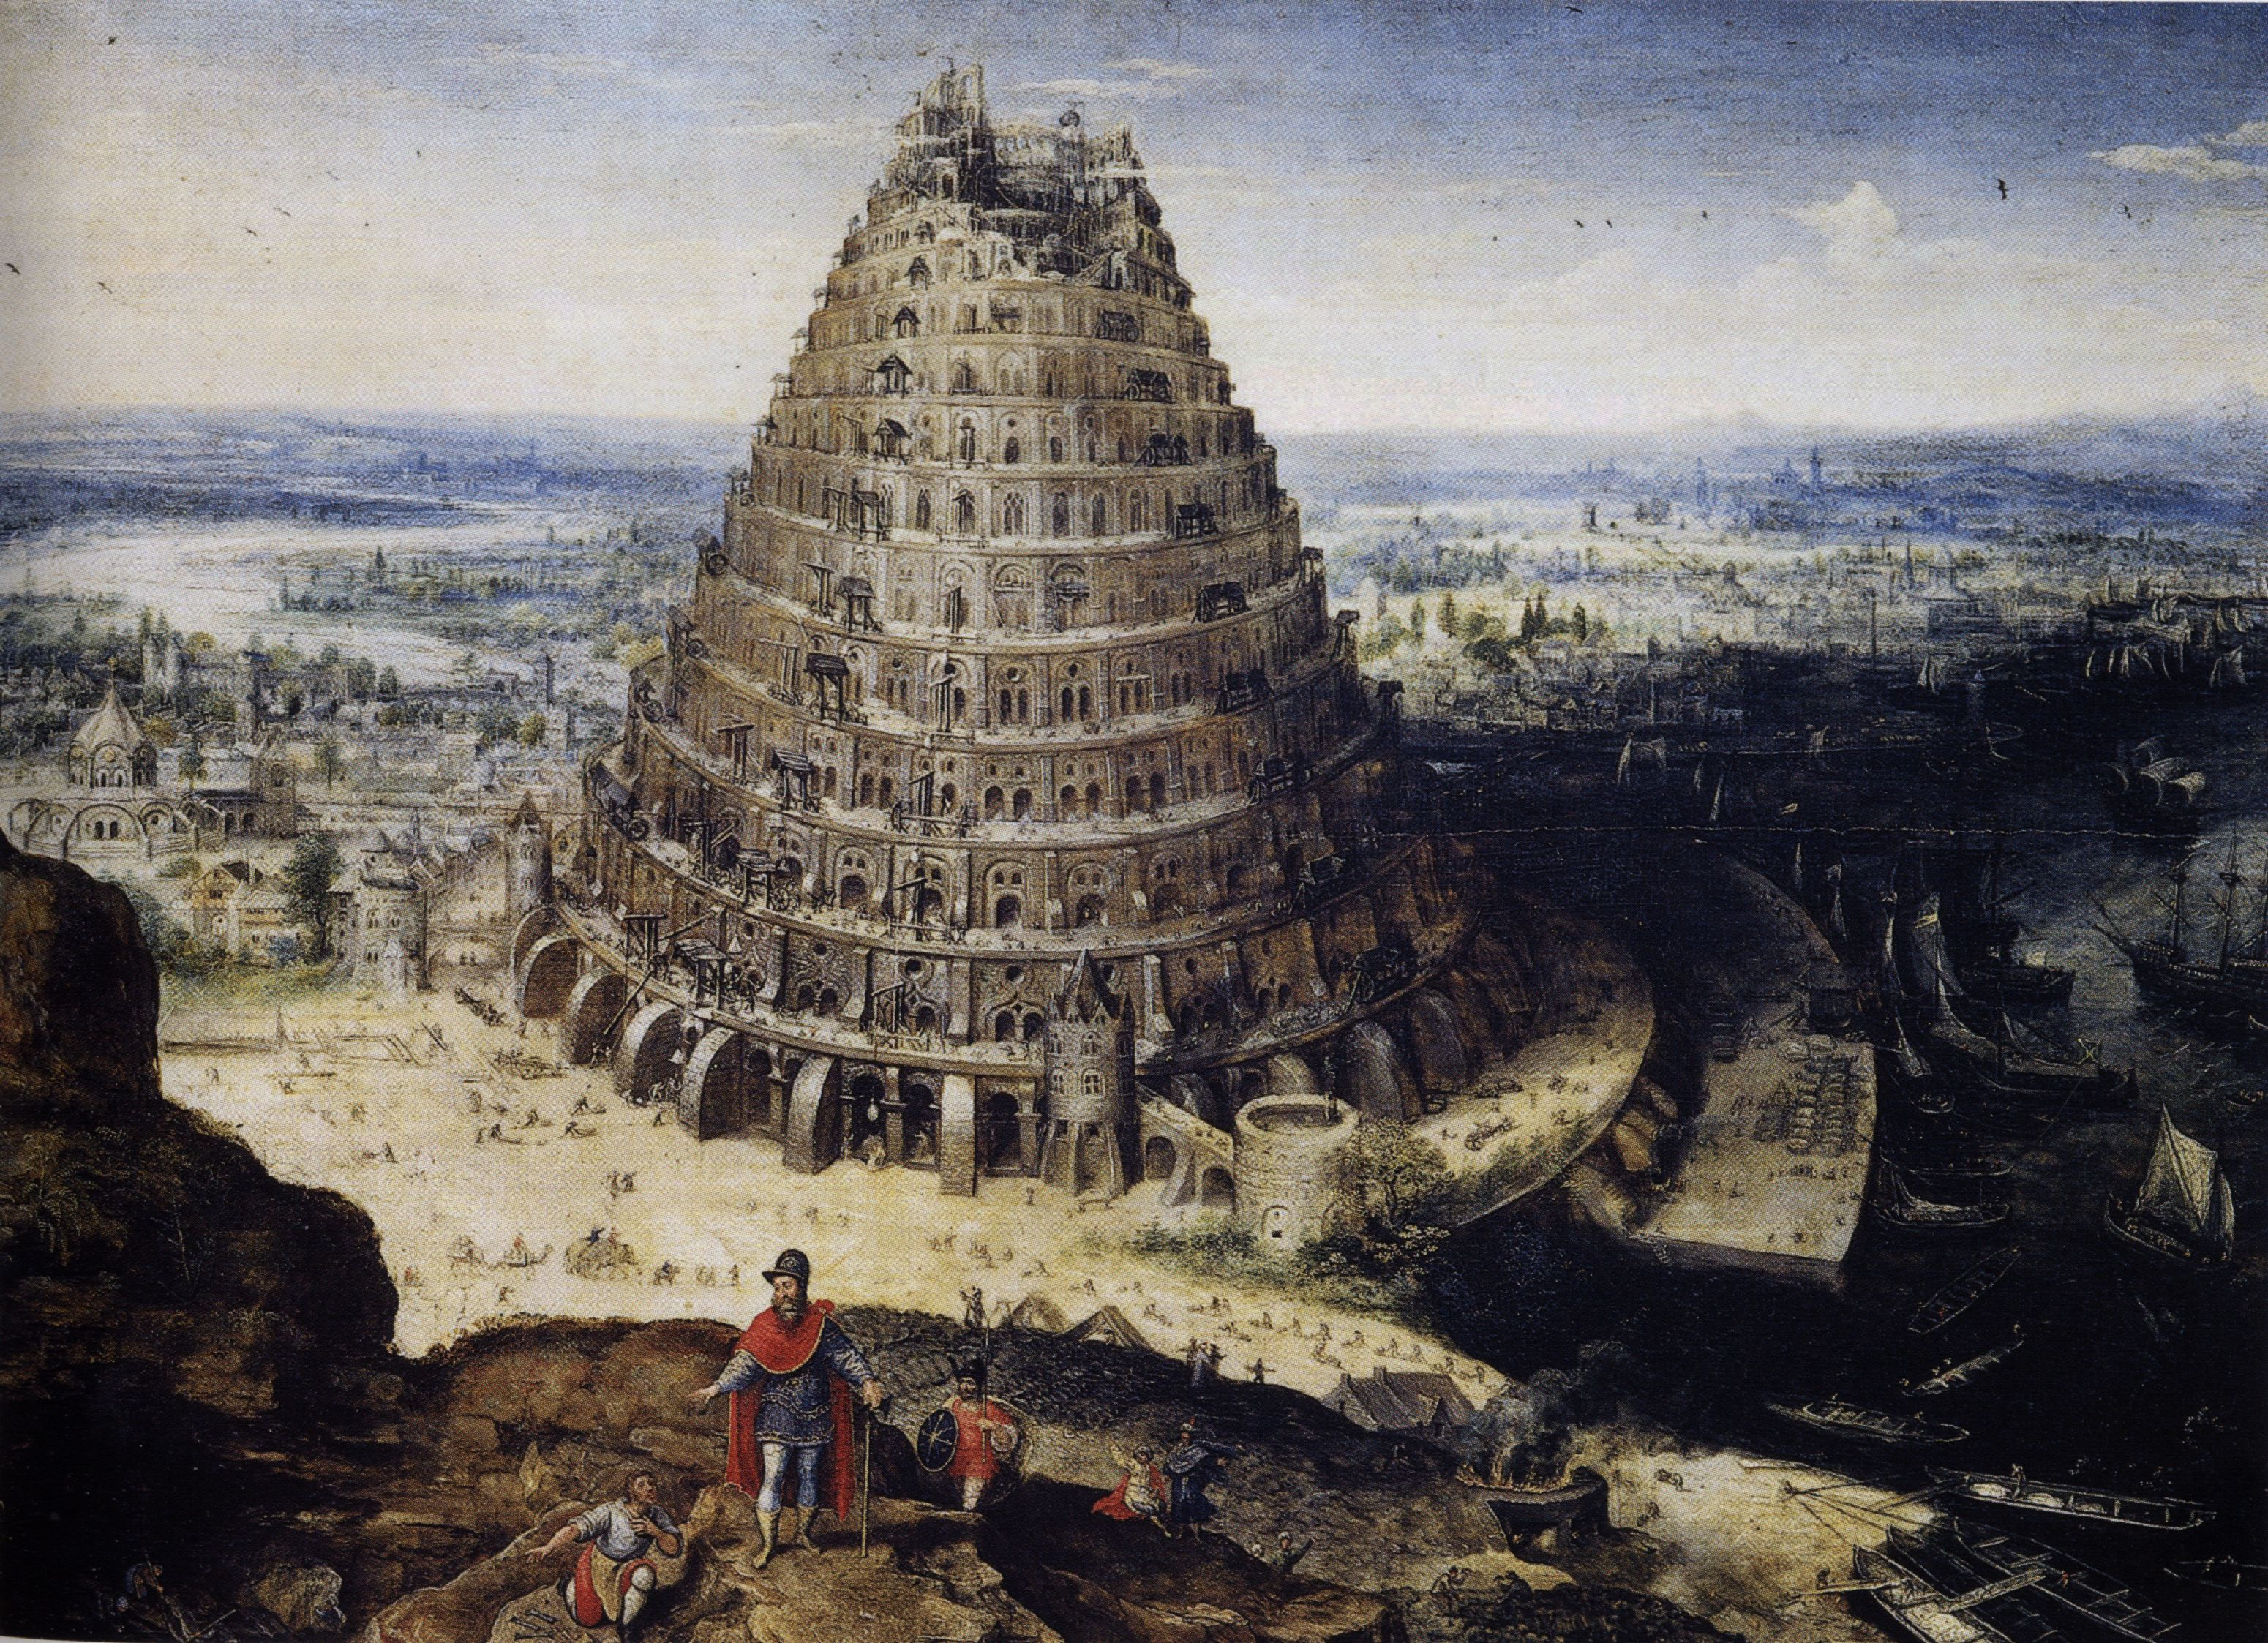 This is an image of a painting of the Tower of Babel